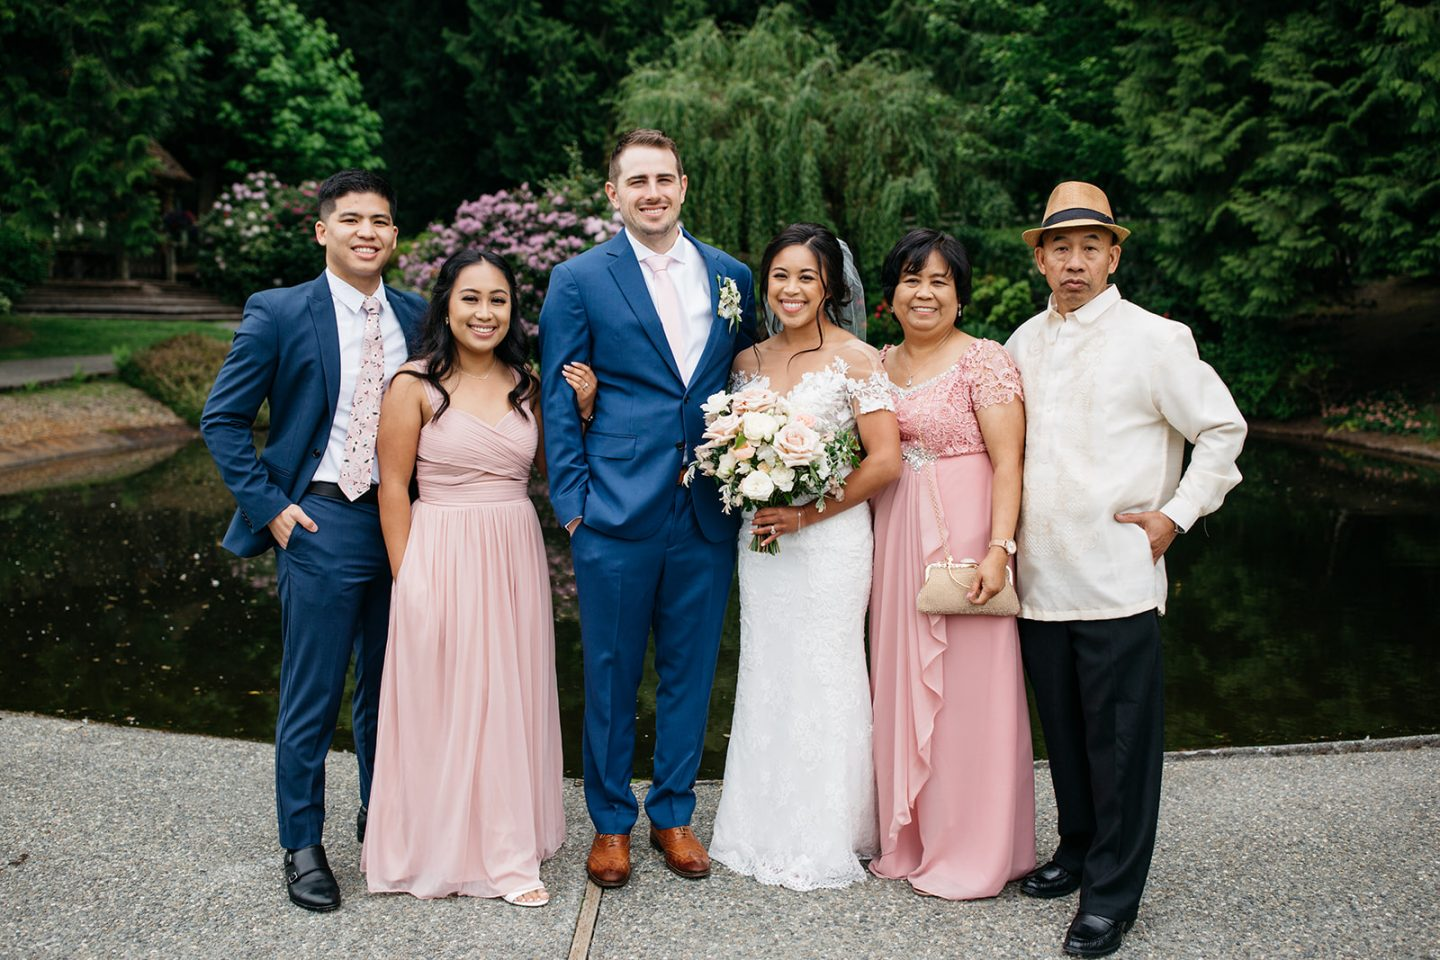 Family Wedding portraits at Chateau Lill in Woodinville WA - spring wedding inspiration - image from www.emmasedition.com